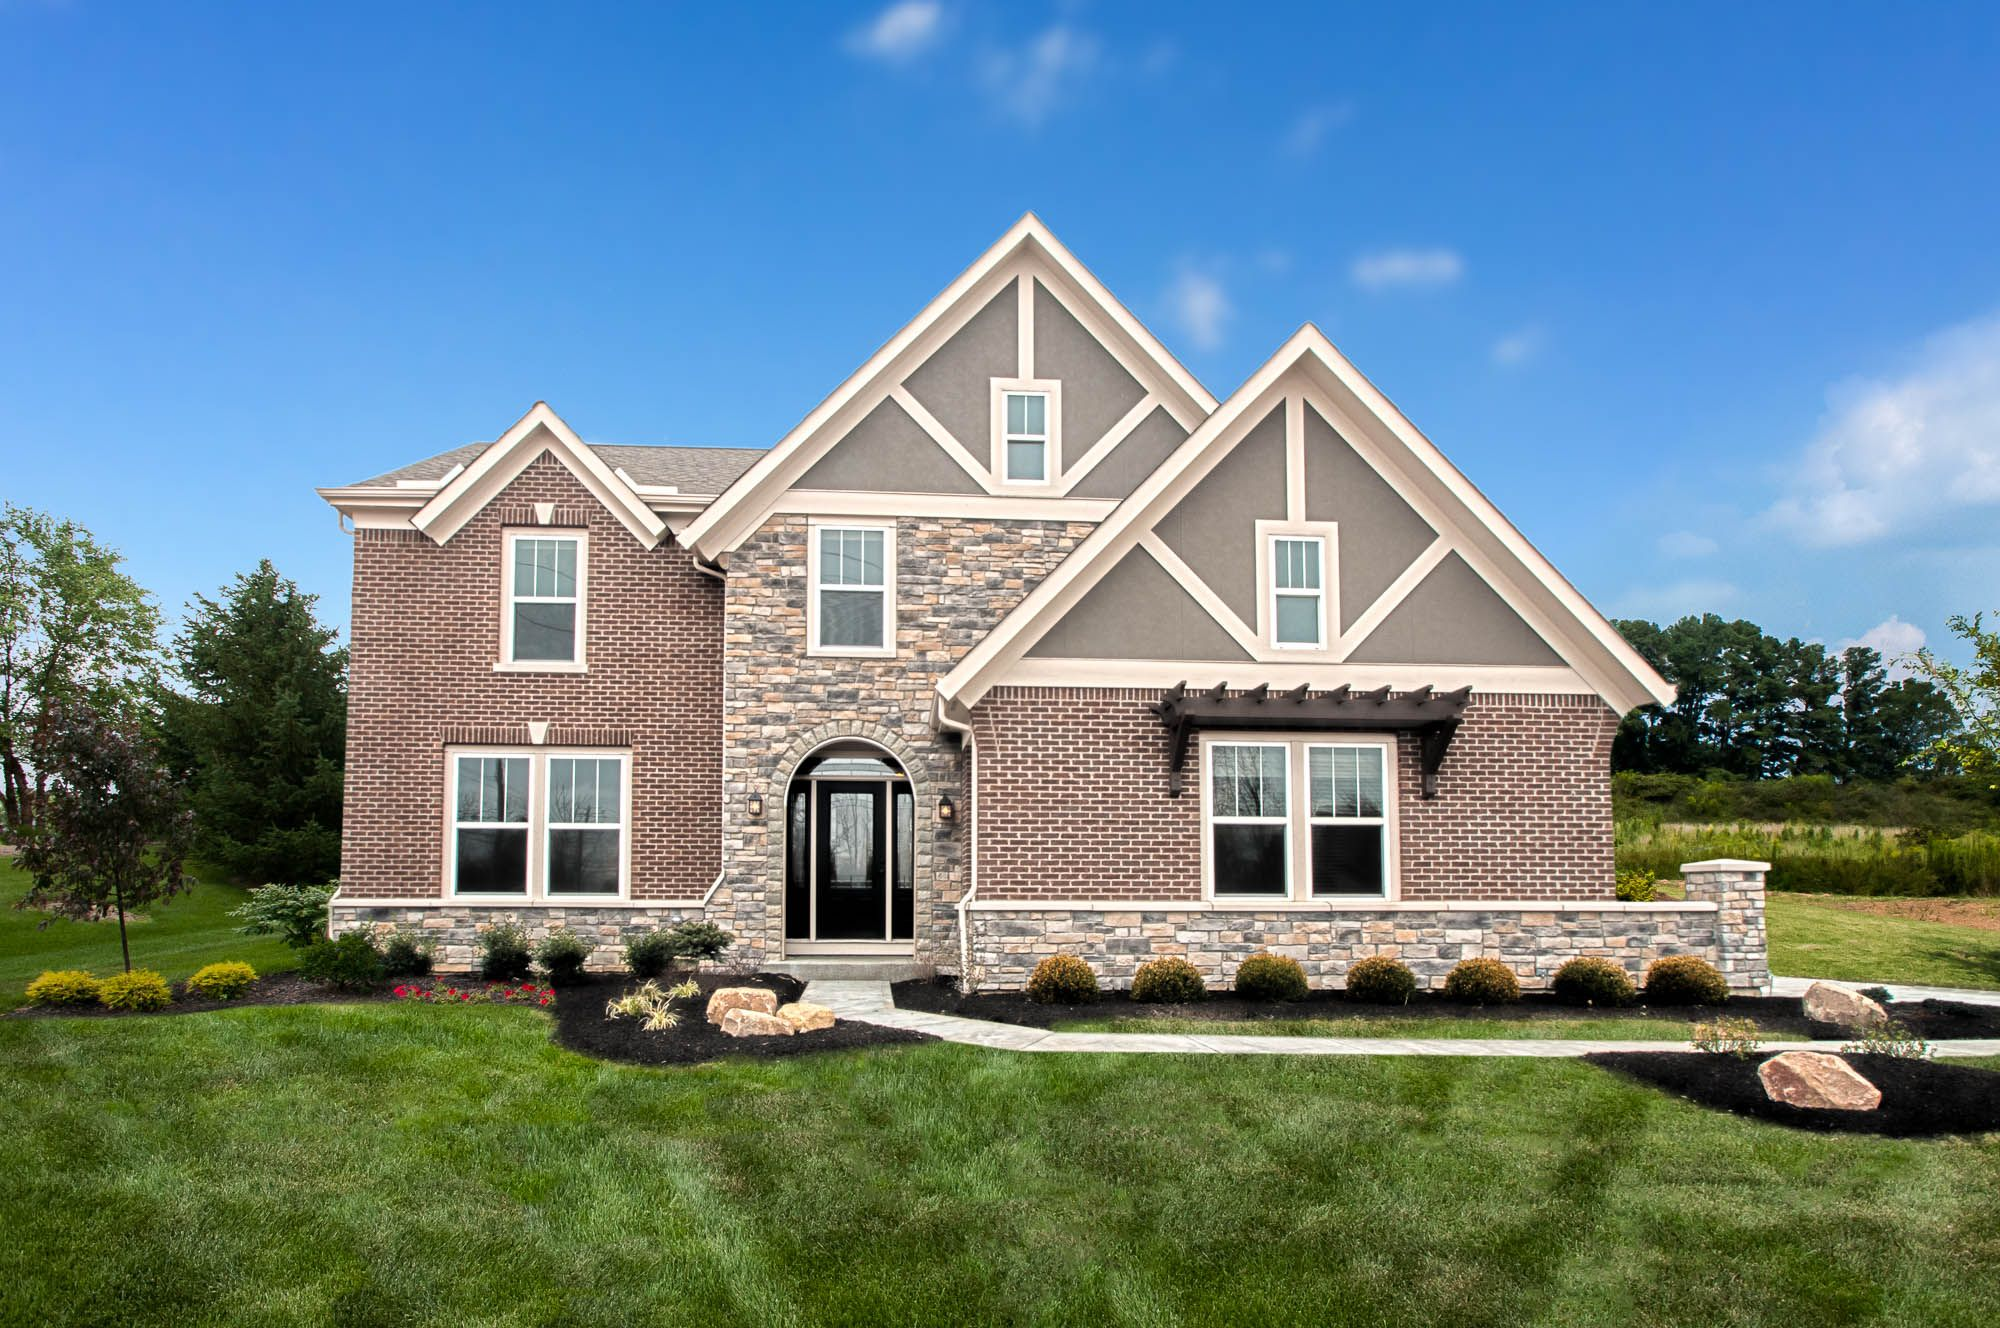 Liberty township homes for sale homes for sale in for Liberty home builders